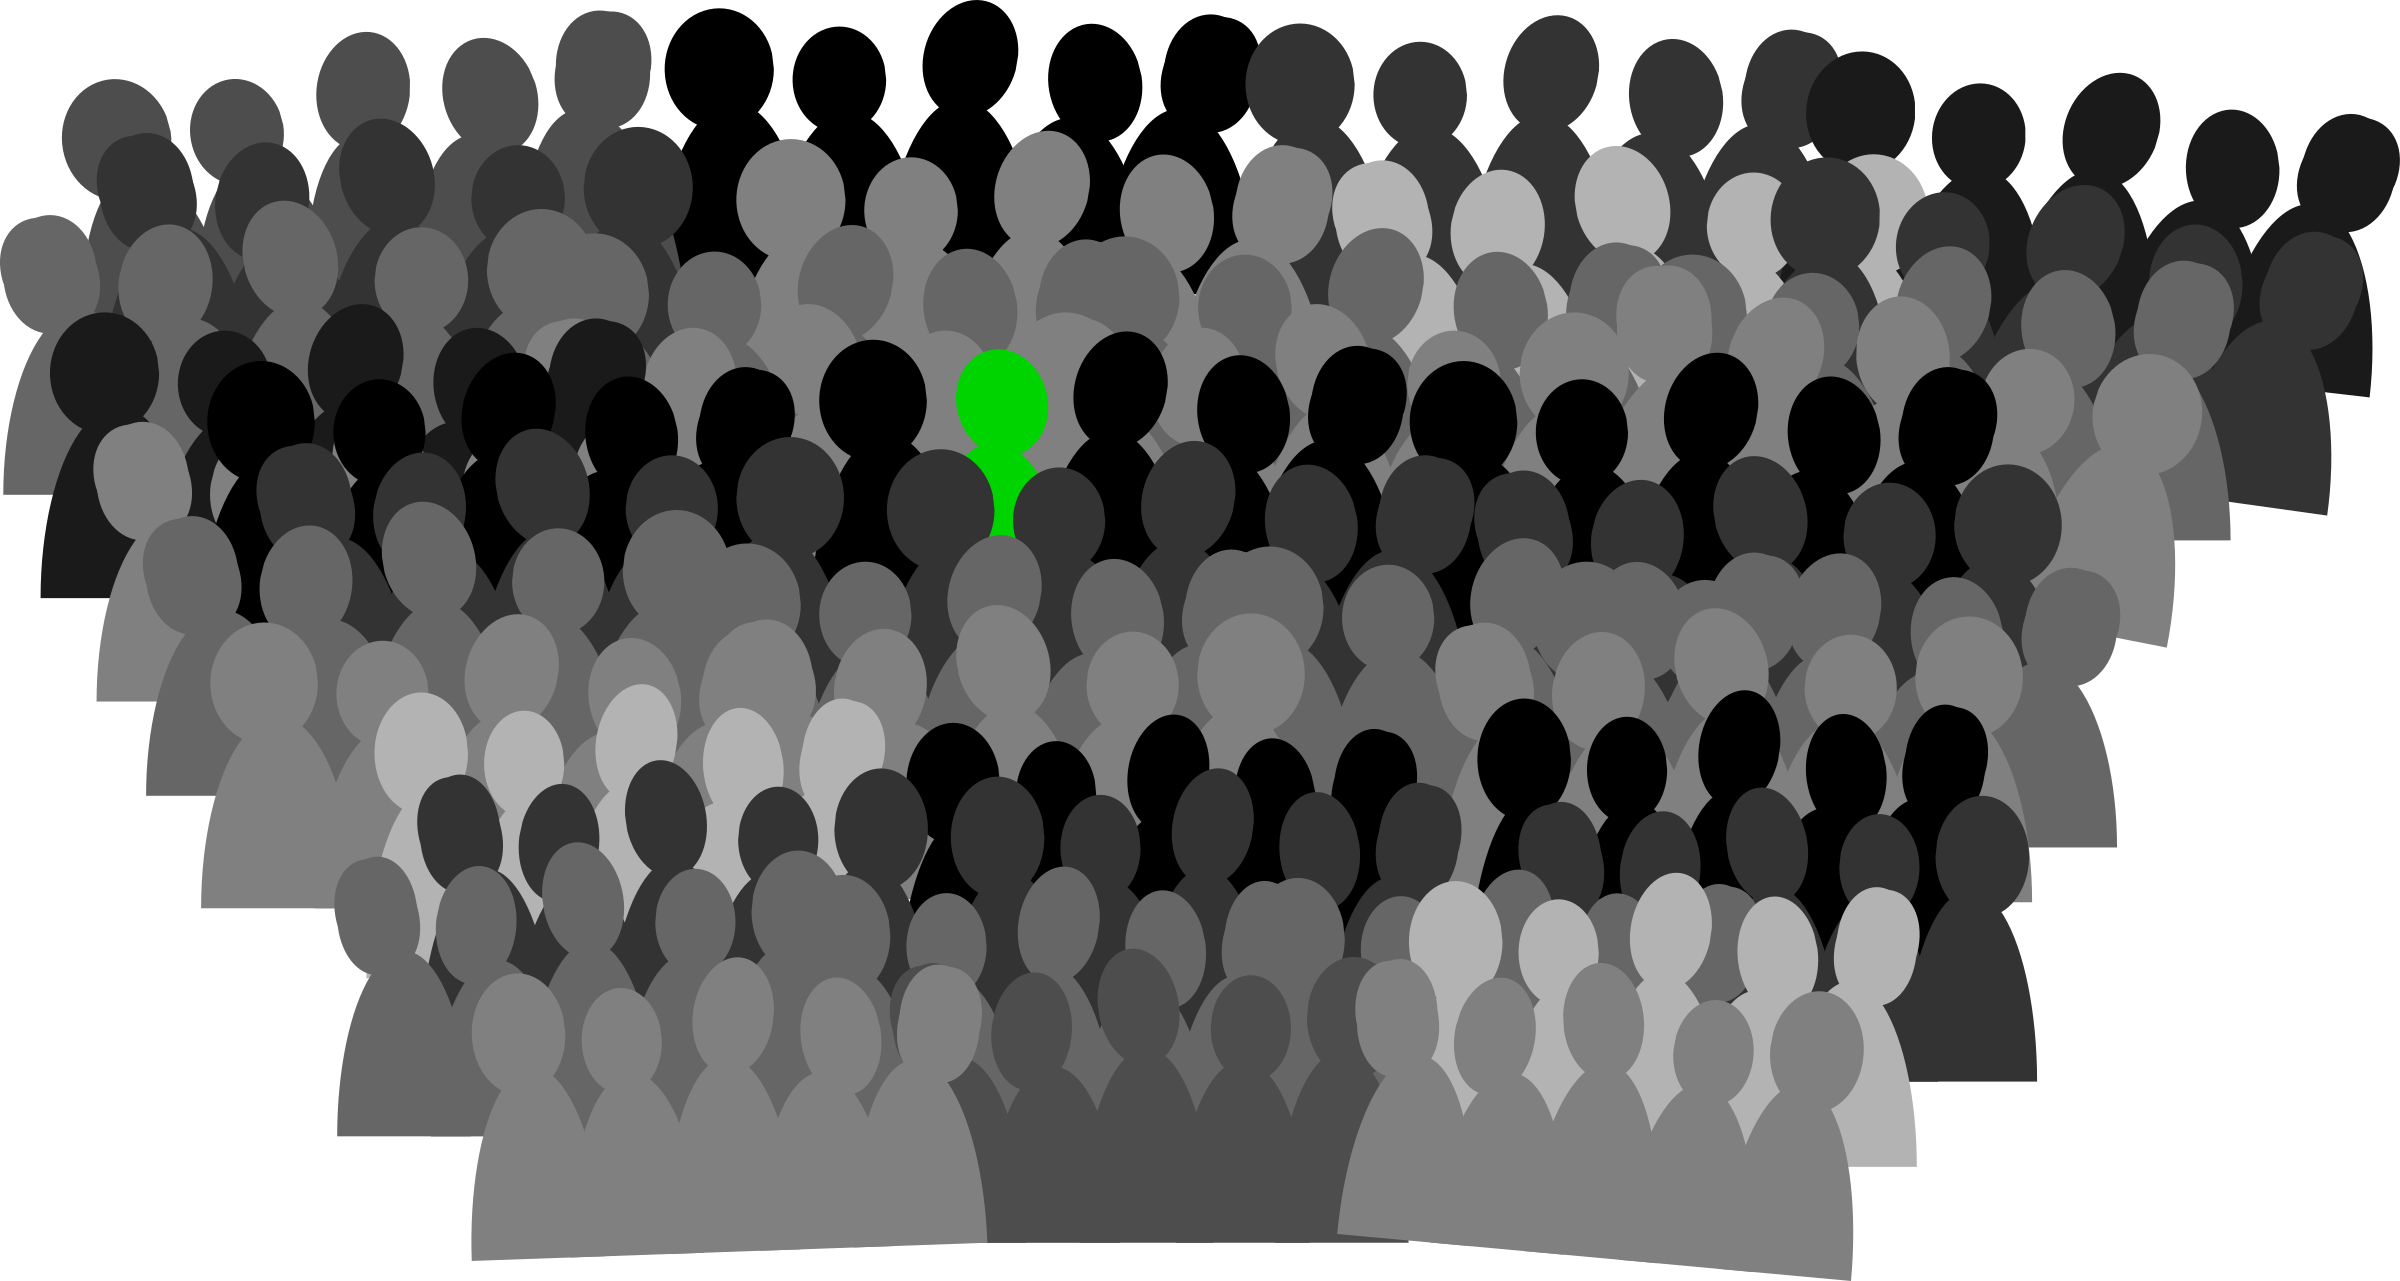 jpg stock Crowd clipart. Panda free images audience